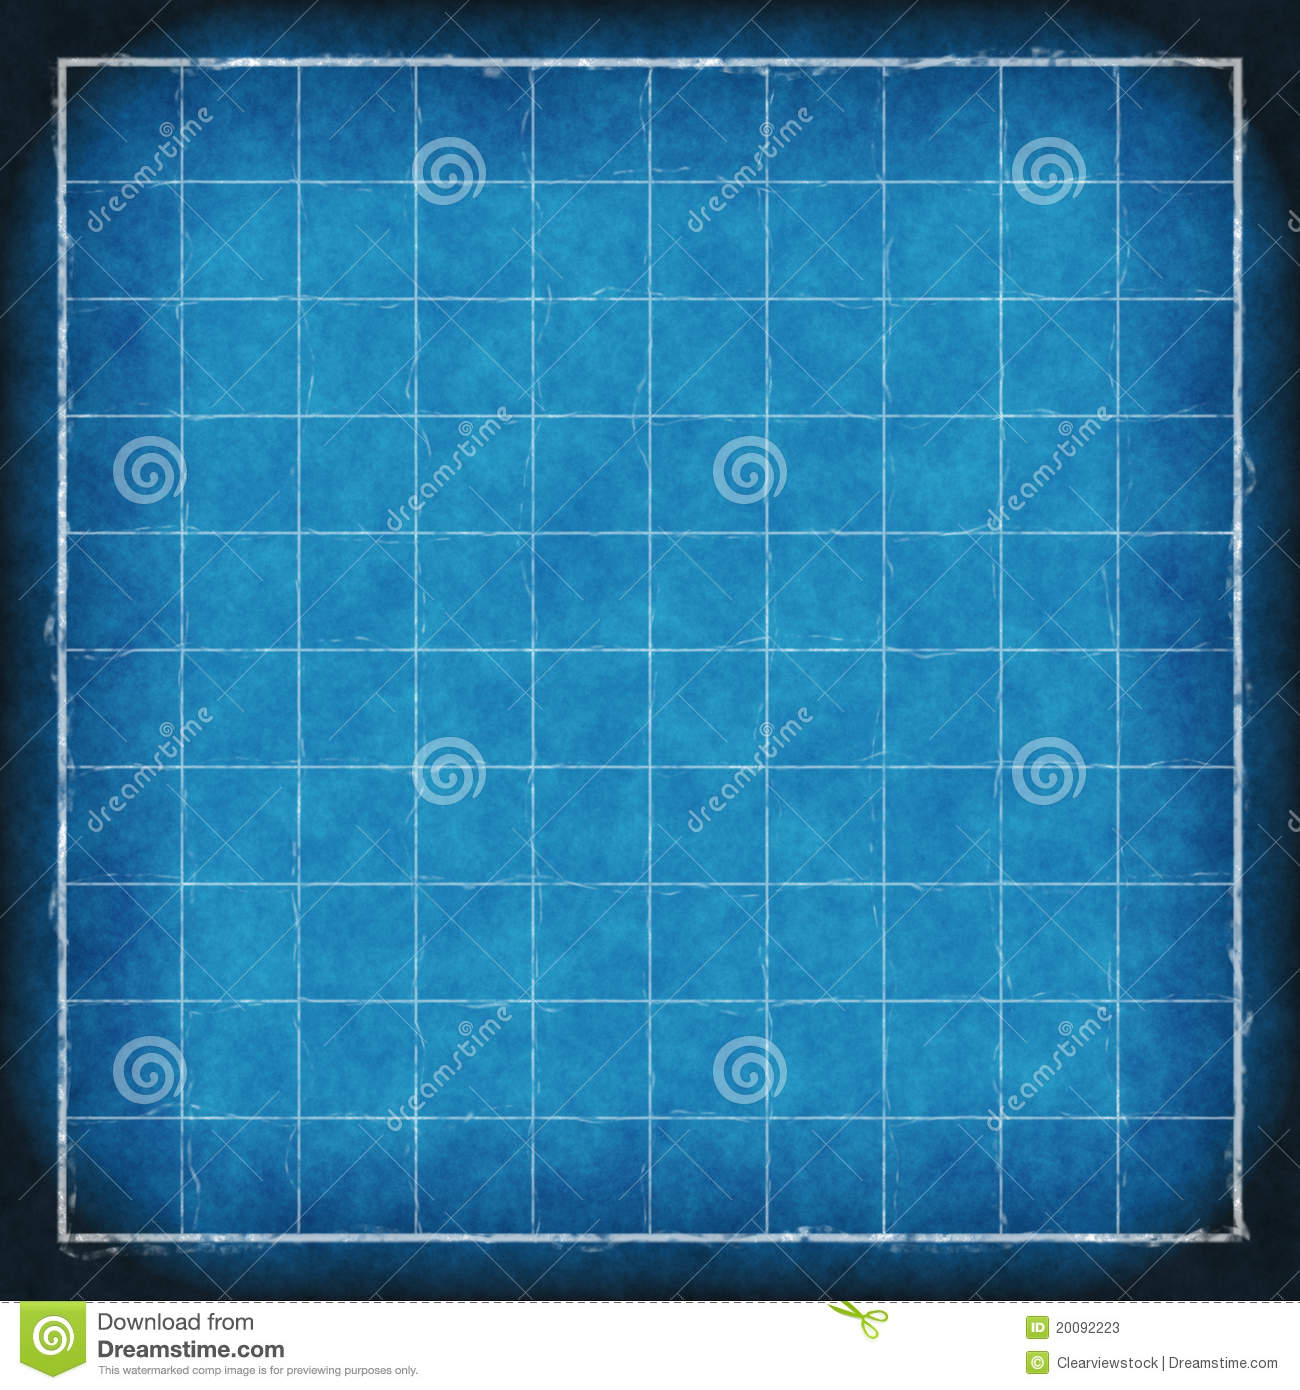 Blueprint background texture stock illustration illustration of blueprint background texture malvernweather Gallery